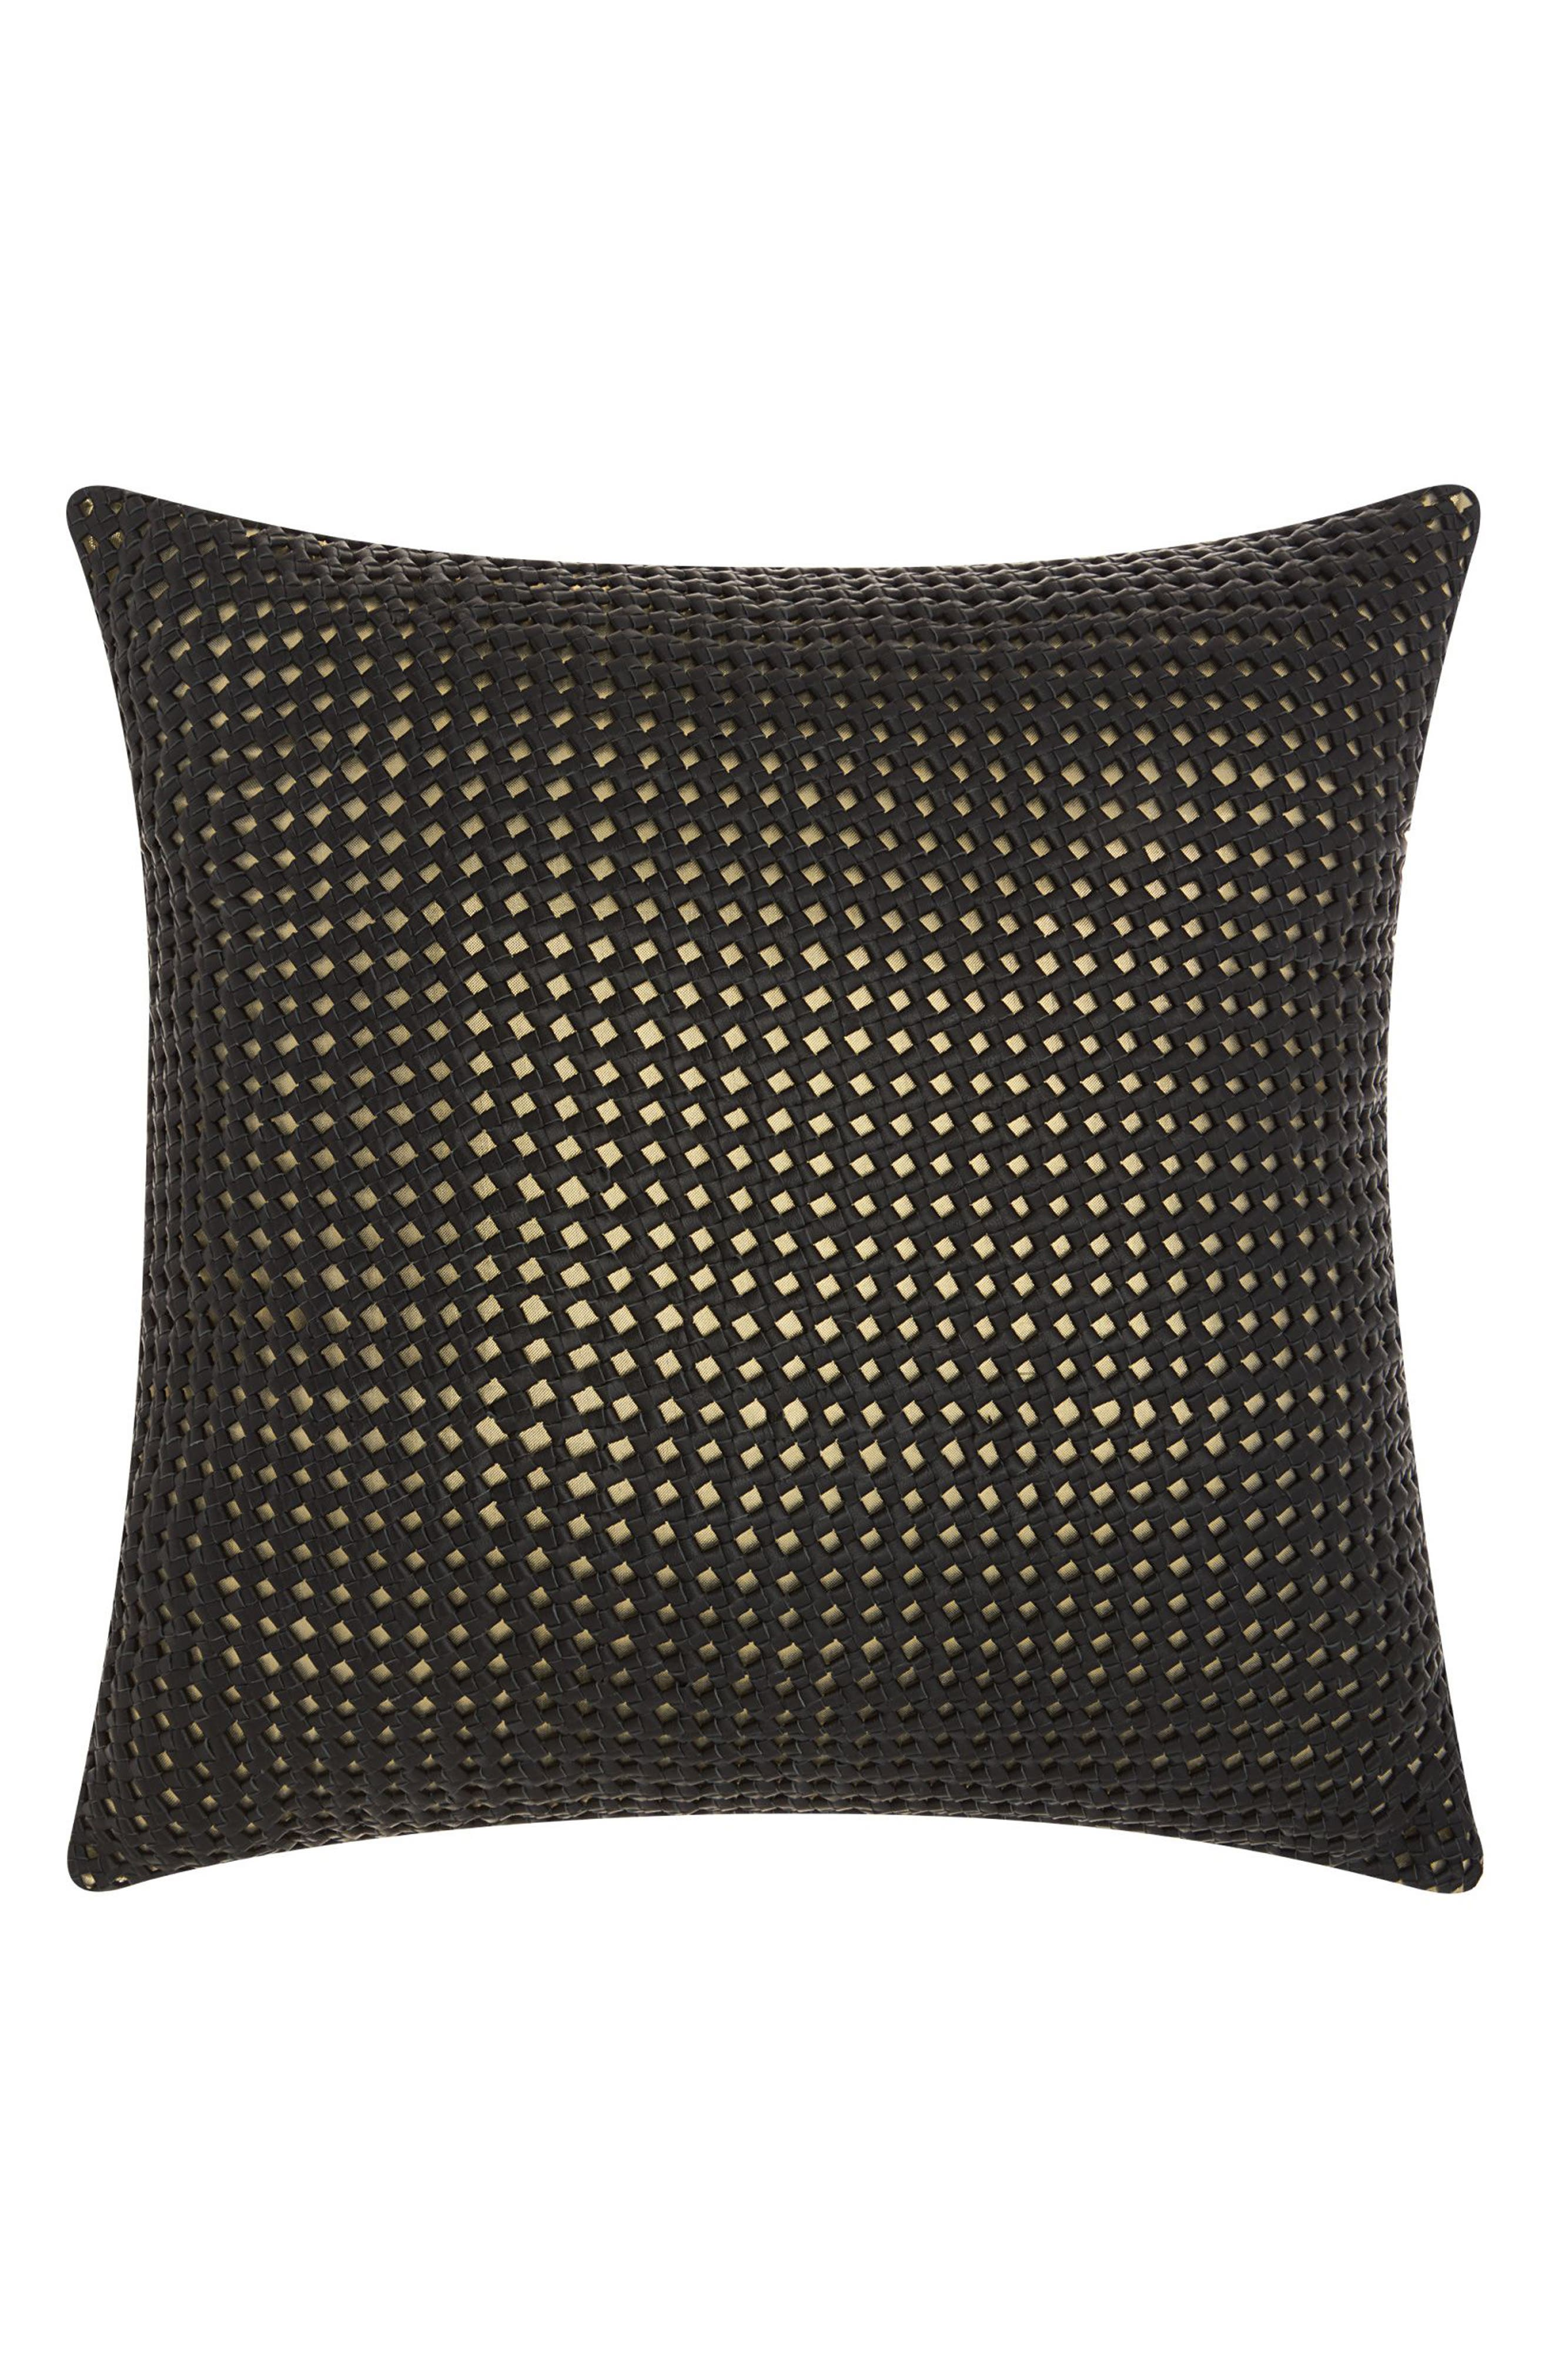 Main Image - Mina Victory Woven Leather Accent Pillow